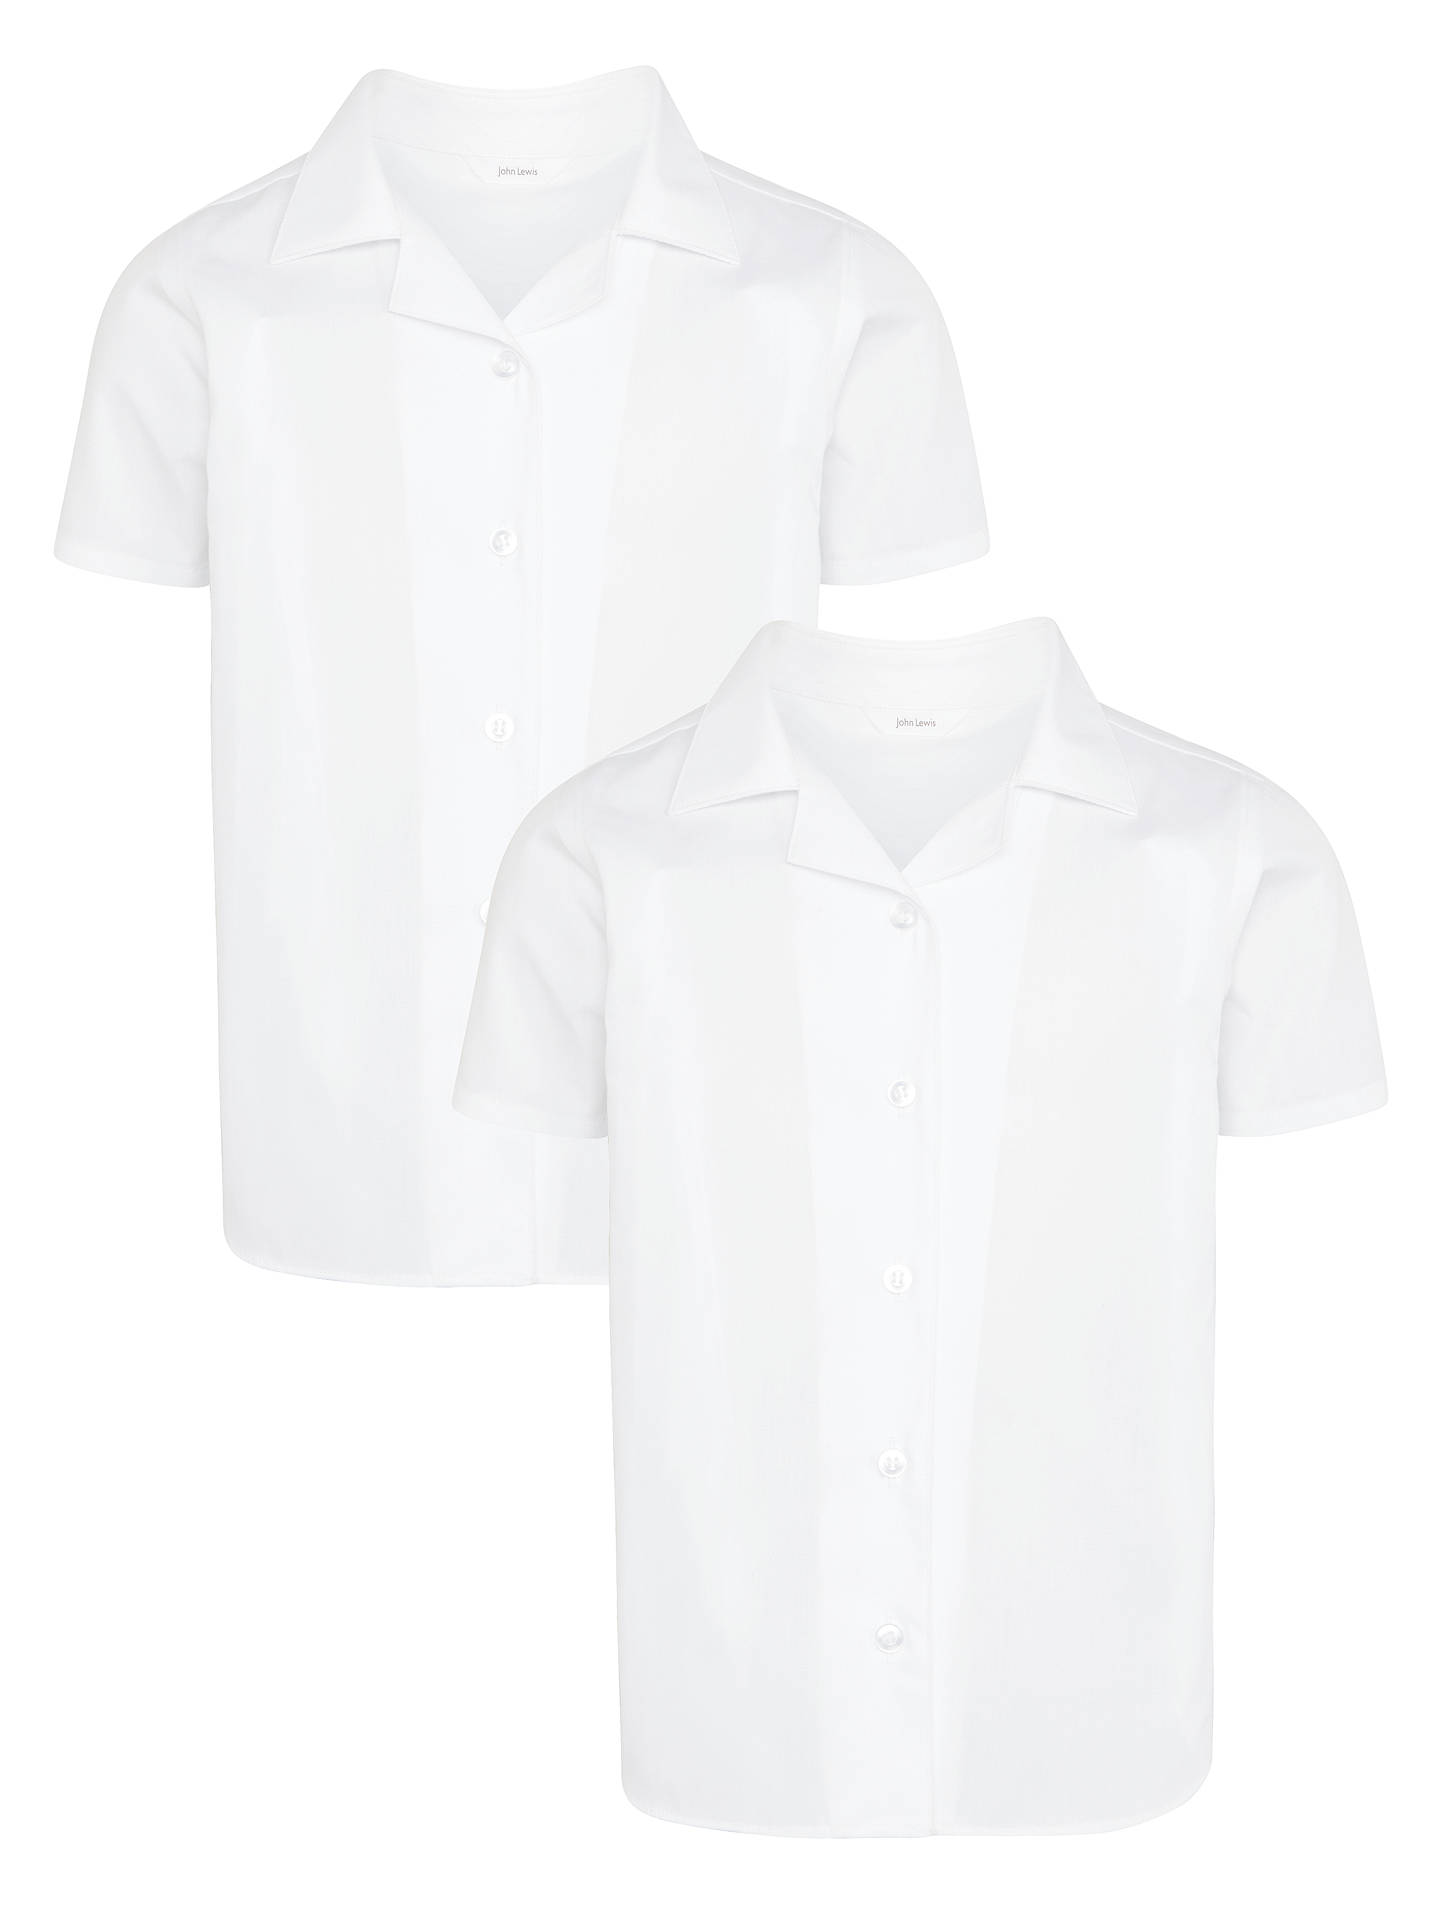 BuyJohn Lewis & Partners Girls' Easy Care Open Neck Short Sleeve School Blouse, Pack of 2, White, 4 years Online at johnlewis.com